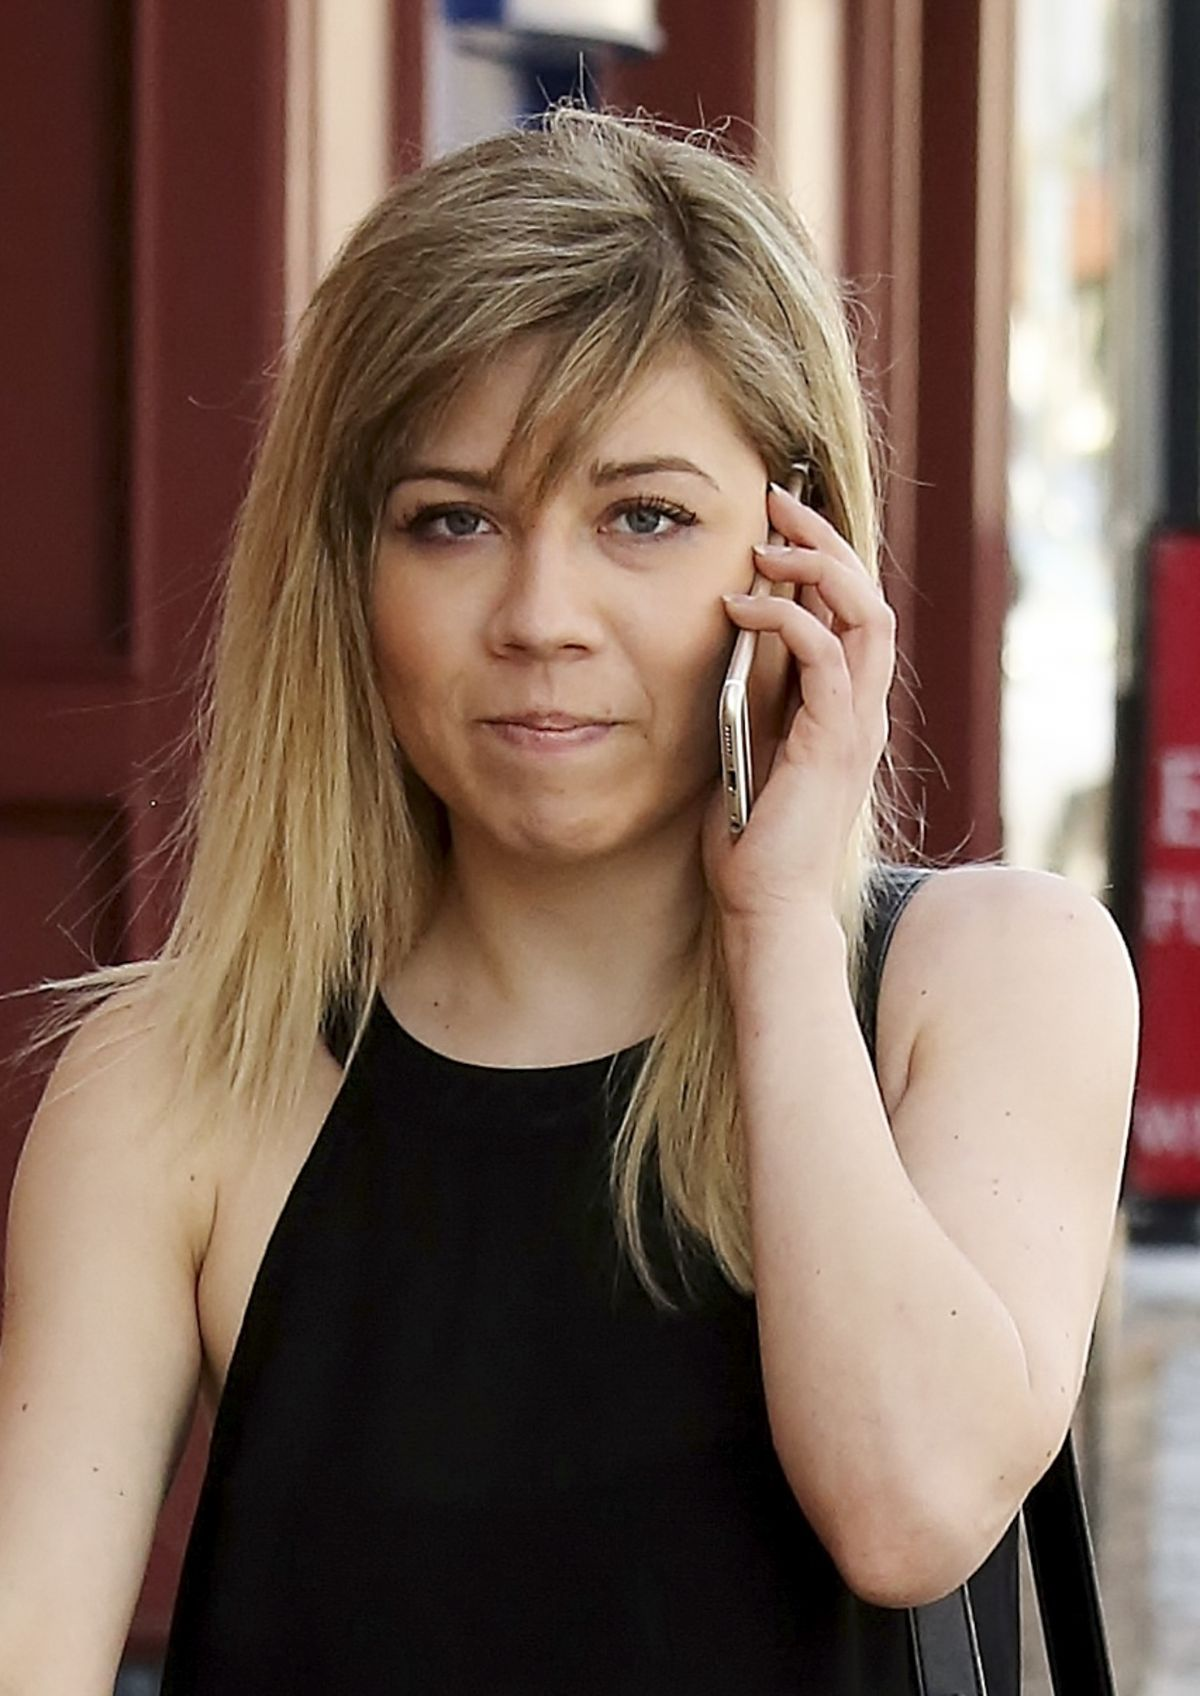 Jennette mccurdy out and about in los angeles 03162017 jennette mccurdy out and about in los angeles 03162017 voltagebd